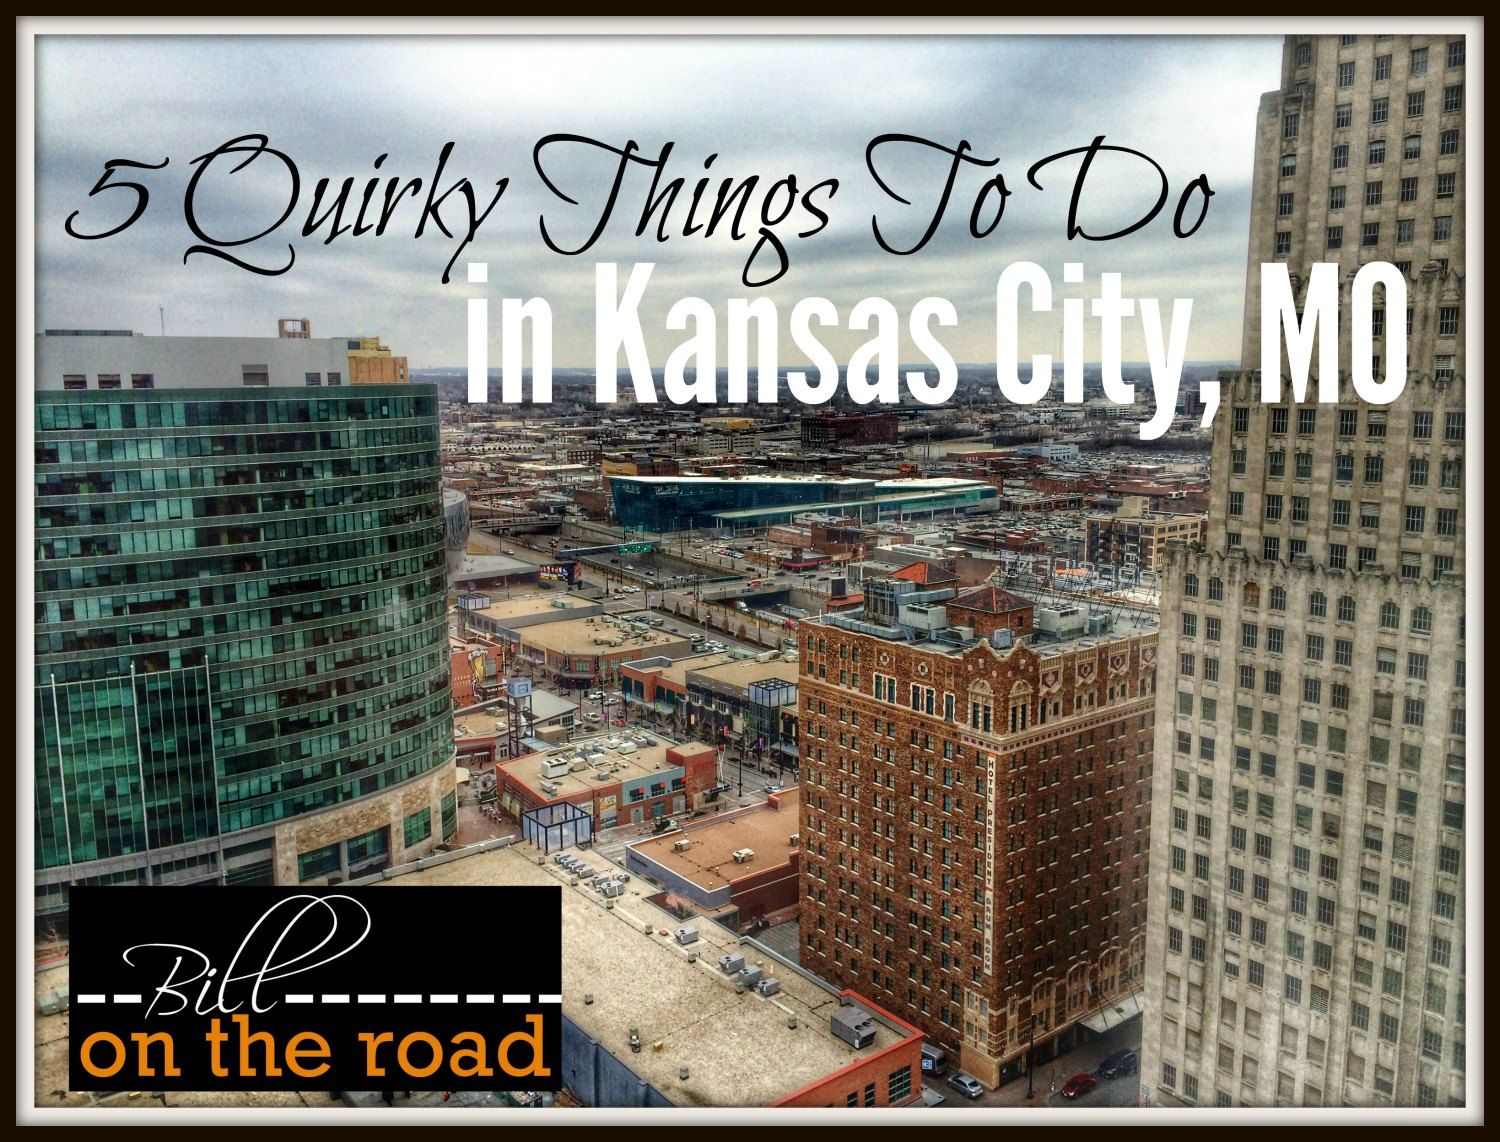 5 Quirky Things To Do In Kansas City Kansas City Kansas City Missouri Kansas Missouri